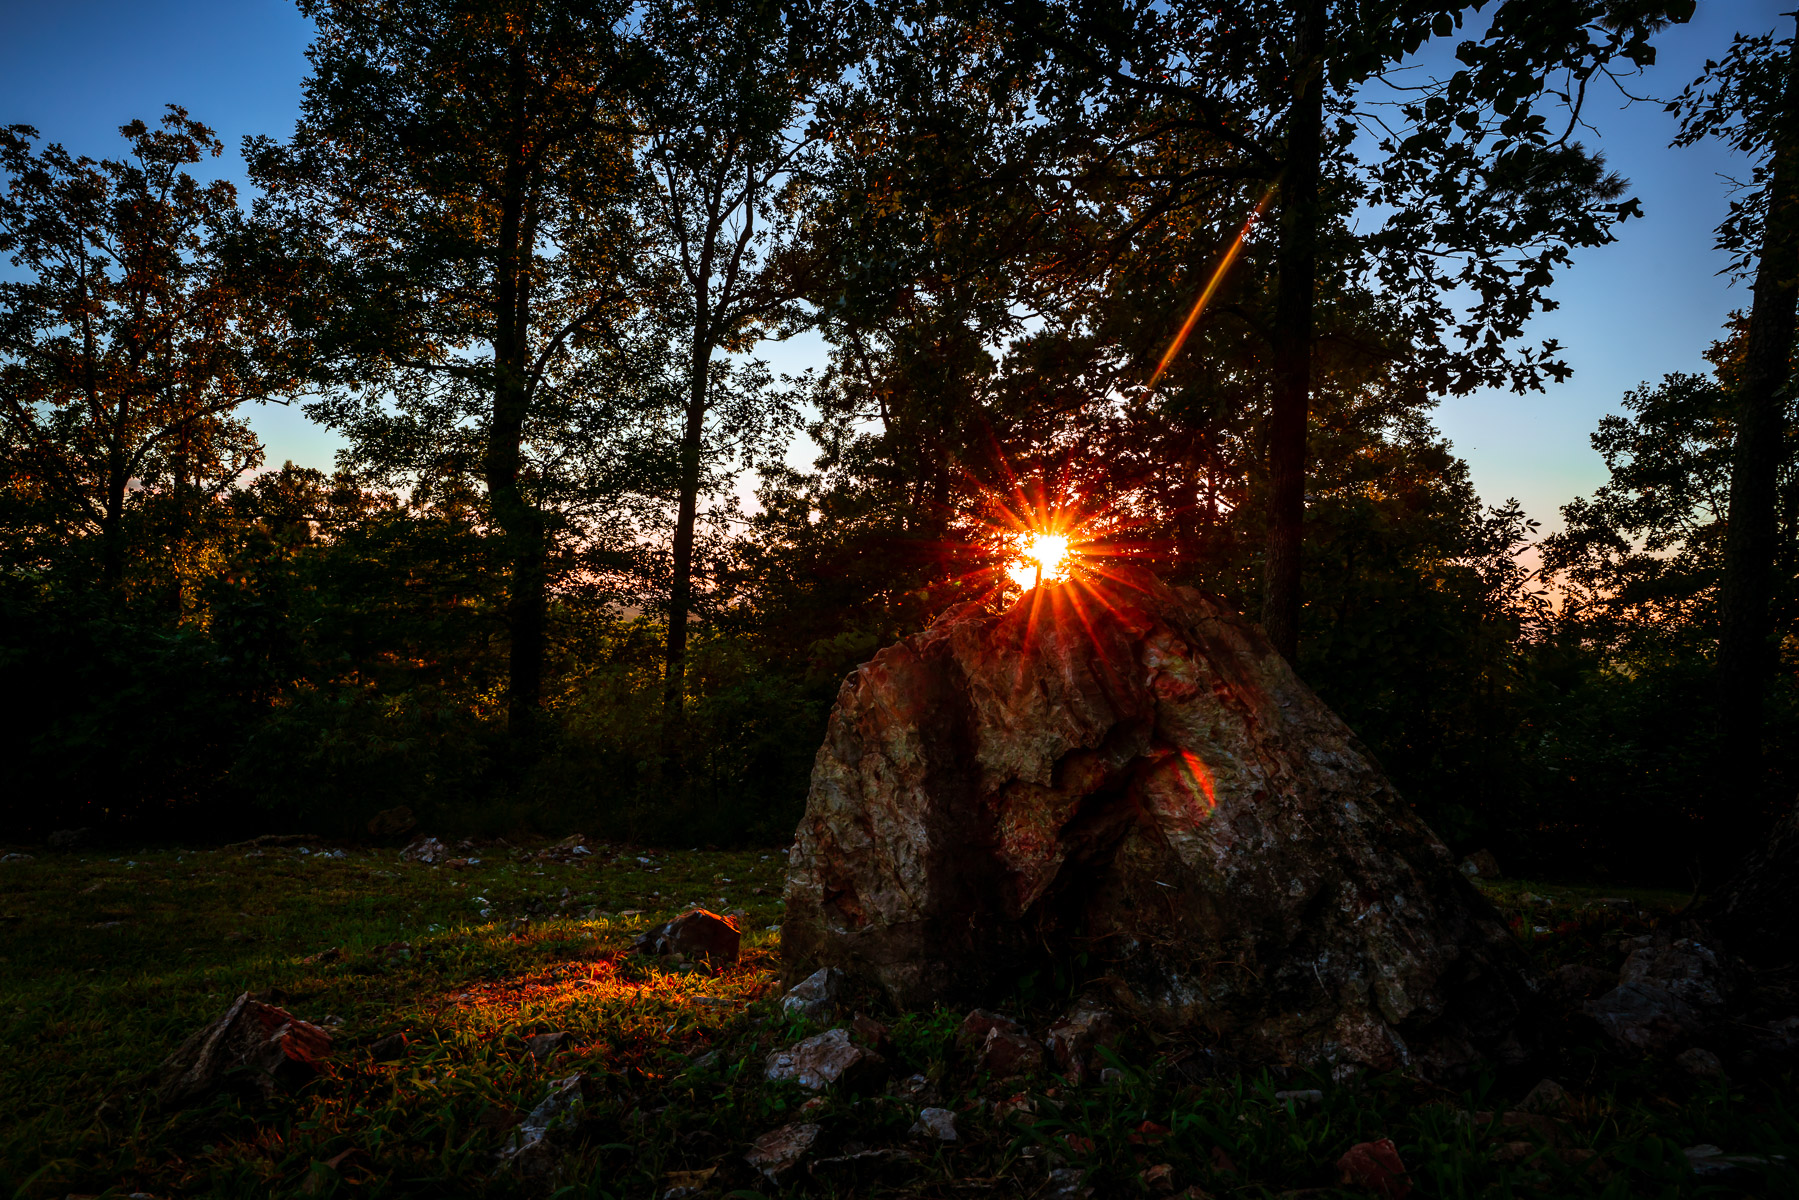 The evening sun shines through trees and over rocks near Mena, Arkansas.